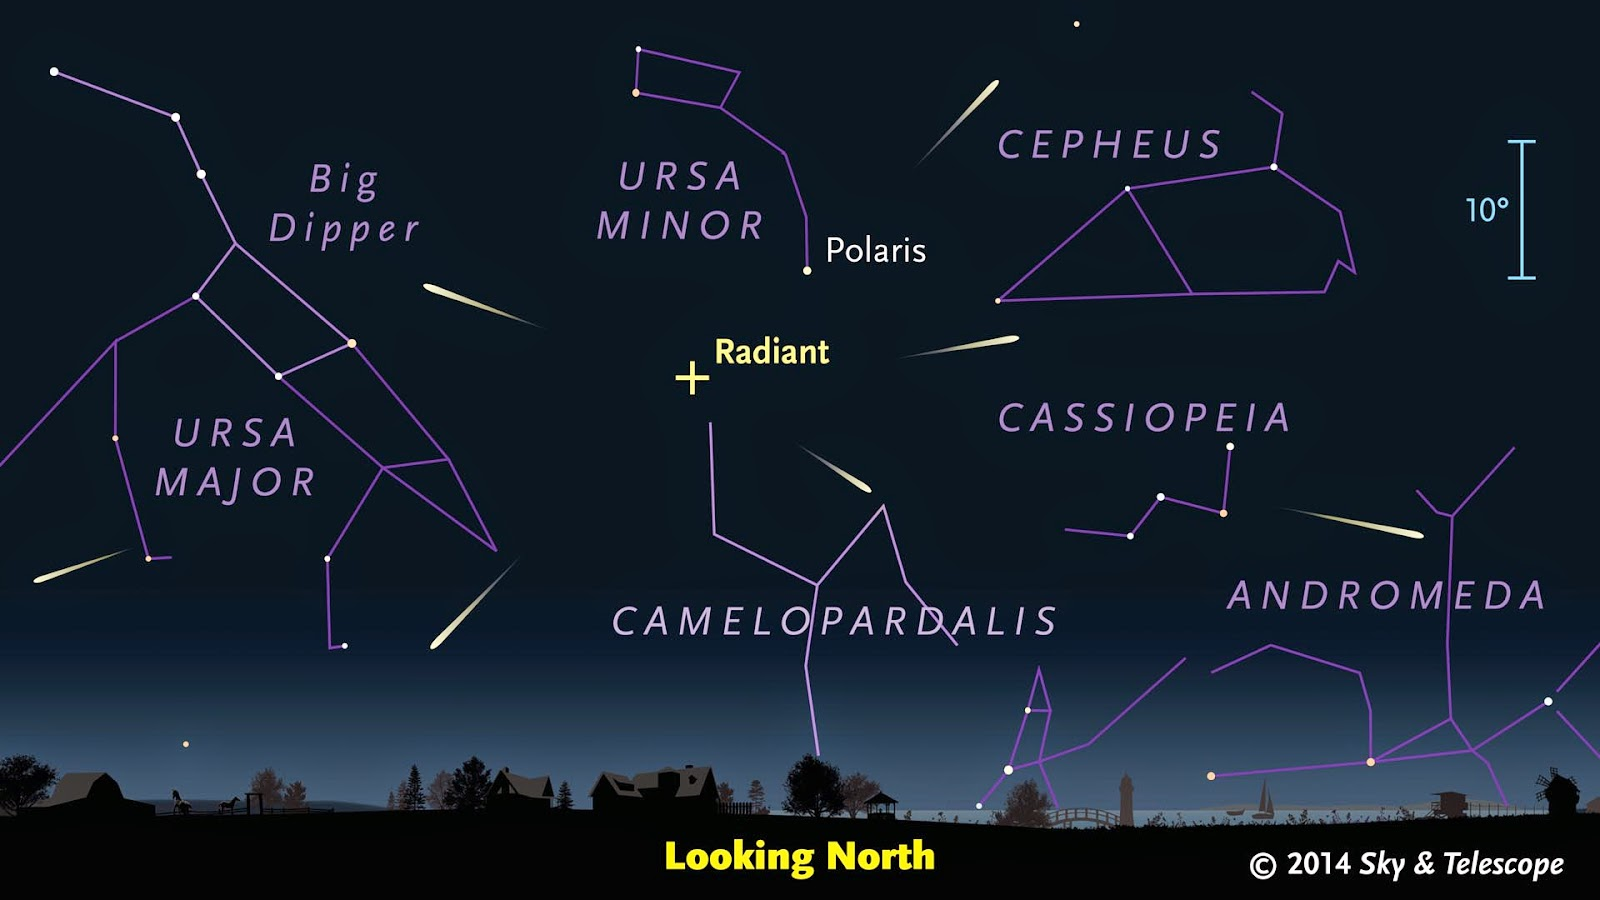 http://www.skyandtelescope.com/astronomy-news/observing-news/mays-surprise-meteor-shower/